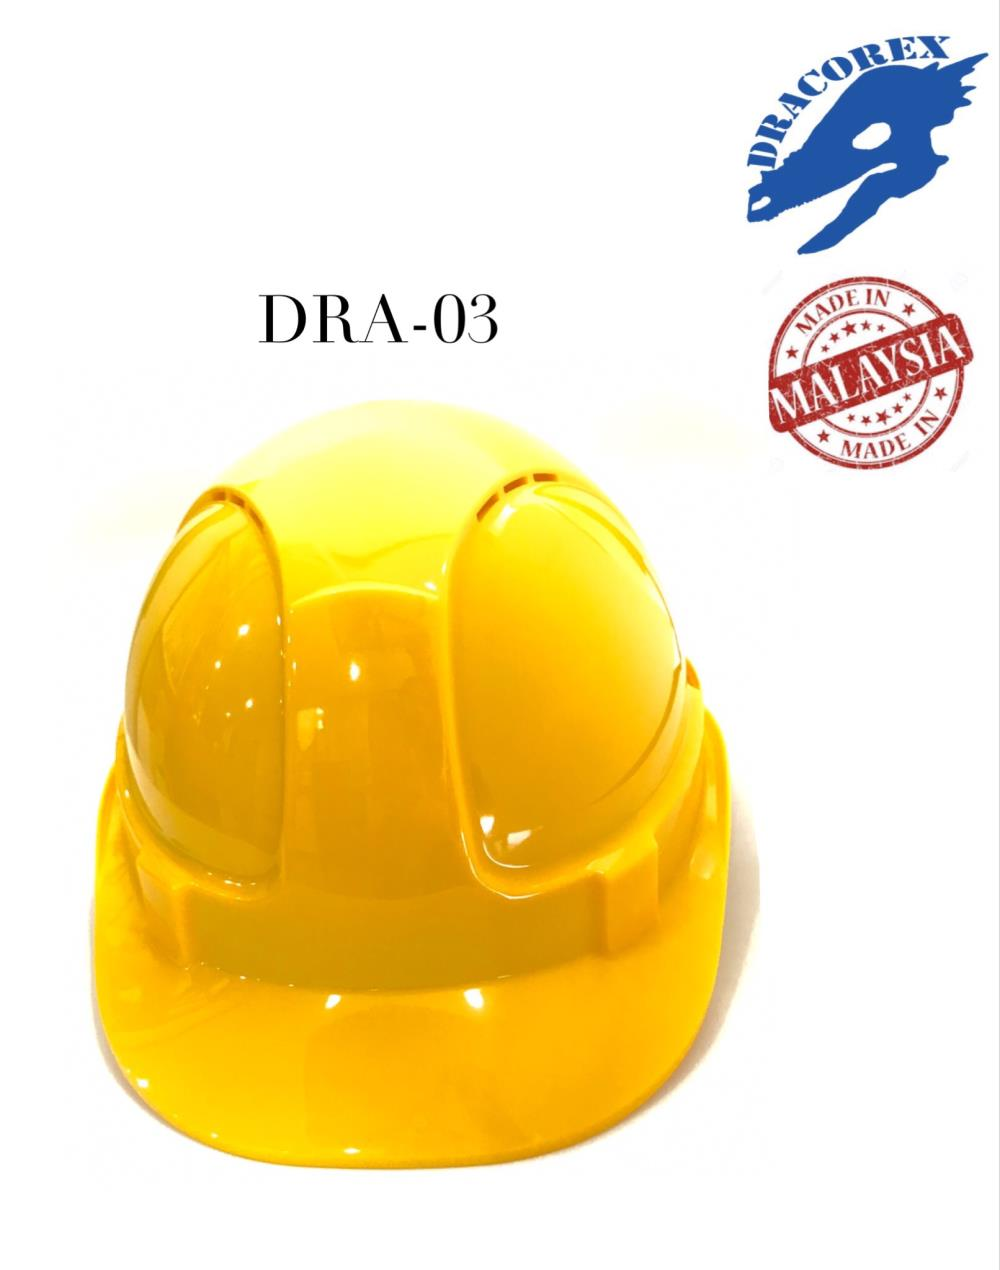 หมวกนิรภัย,หมวกเซฟตี้,DRACOREX,Plant and Facility Equipment/Safety Equipment/Head & Face Protection Equipment